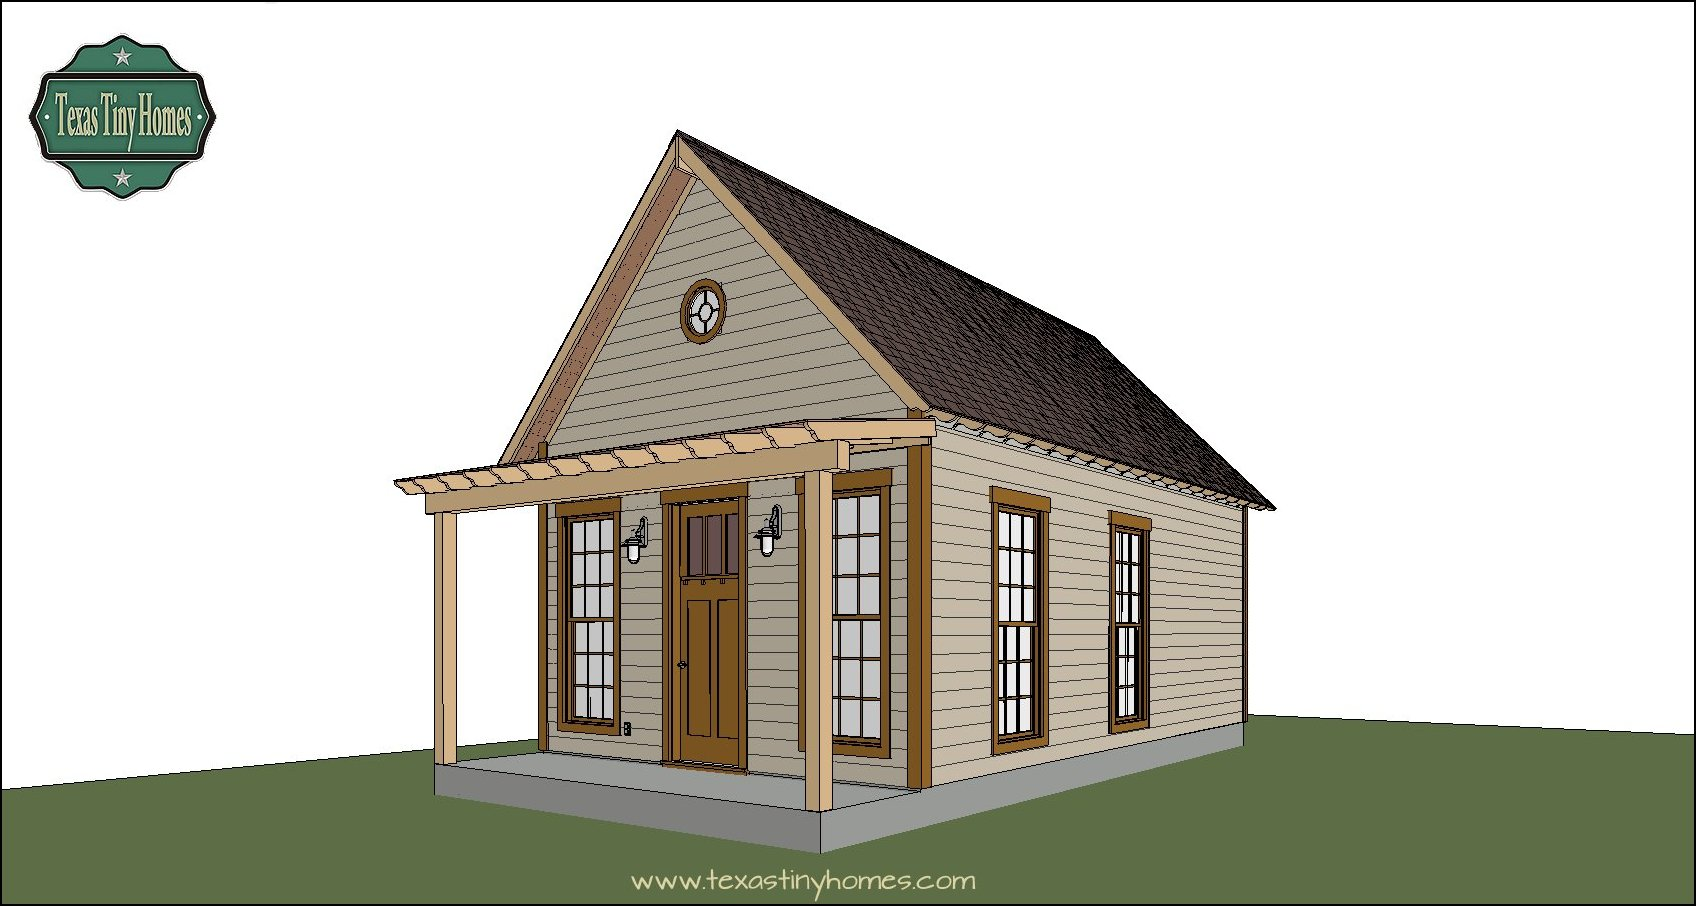 ... Small Homes, Little House Texas, Tiny House Plans, Small Home ...